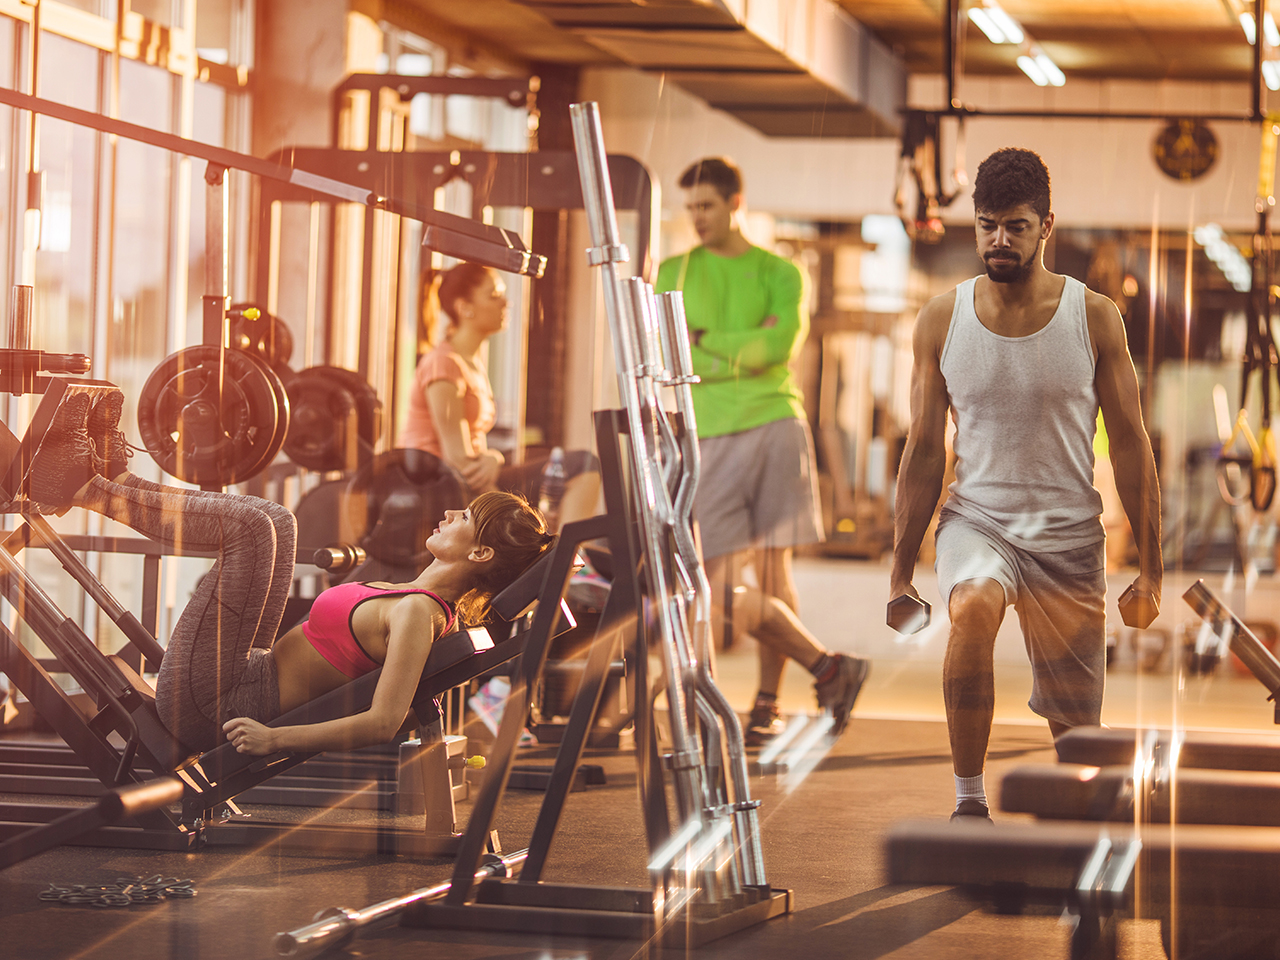 The best legs workout for beginners